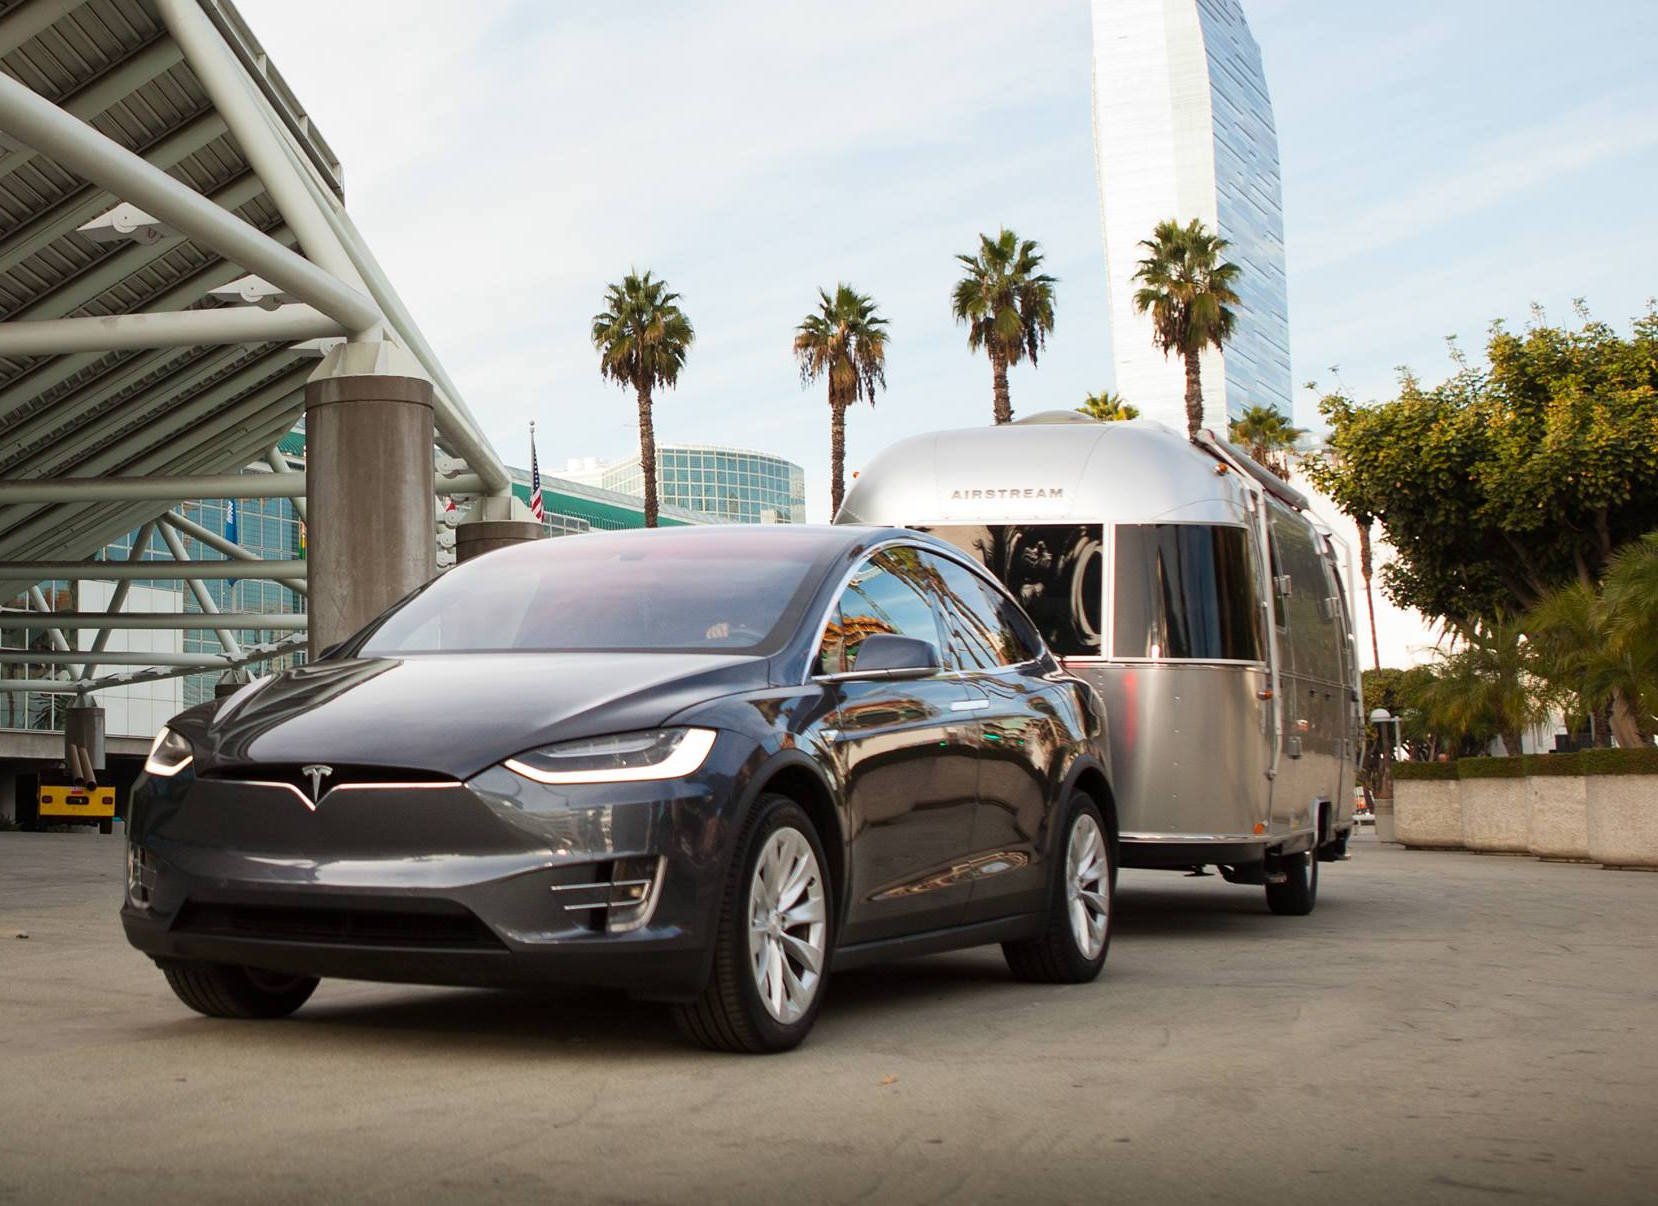 Tesla Has Announced That It Will Make Its Long Awaited Debut At The La Auto Show This Friday November 18 Los Angeles Convention Center